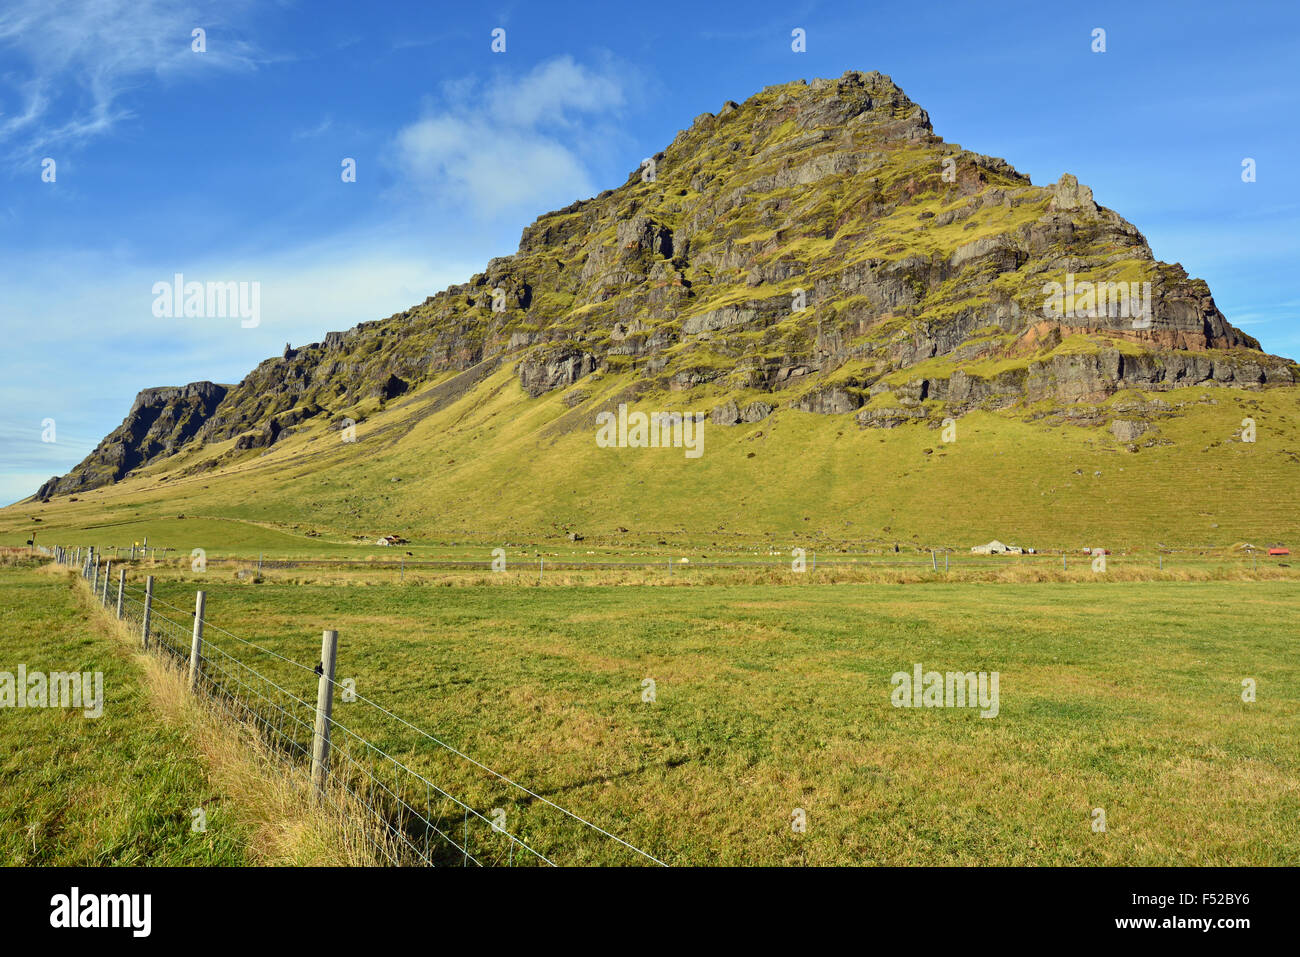 Rocky outcrop near the Eyjafjallajökull volcano in South Iceland - Stock Image